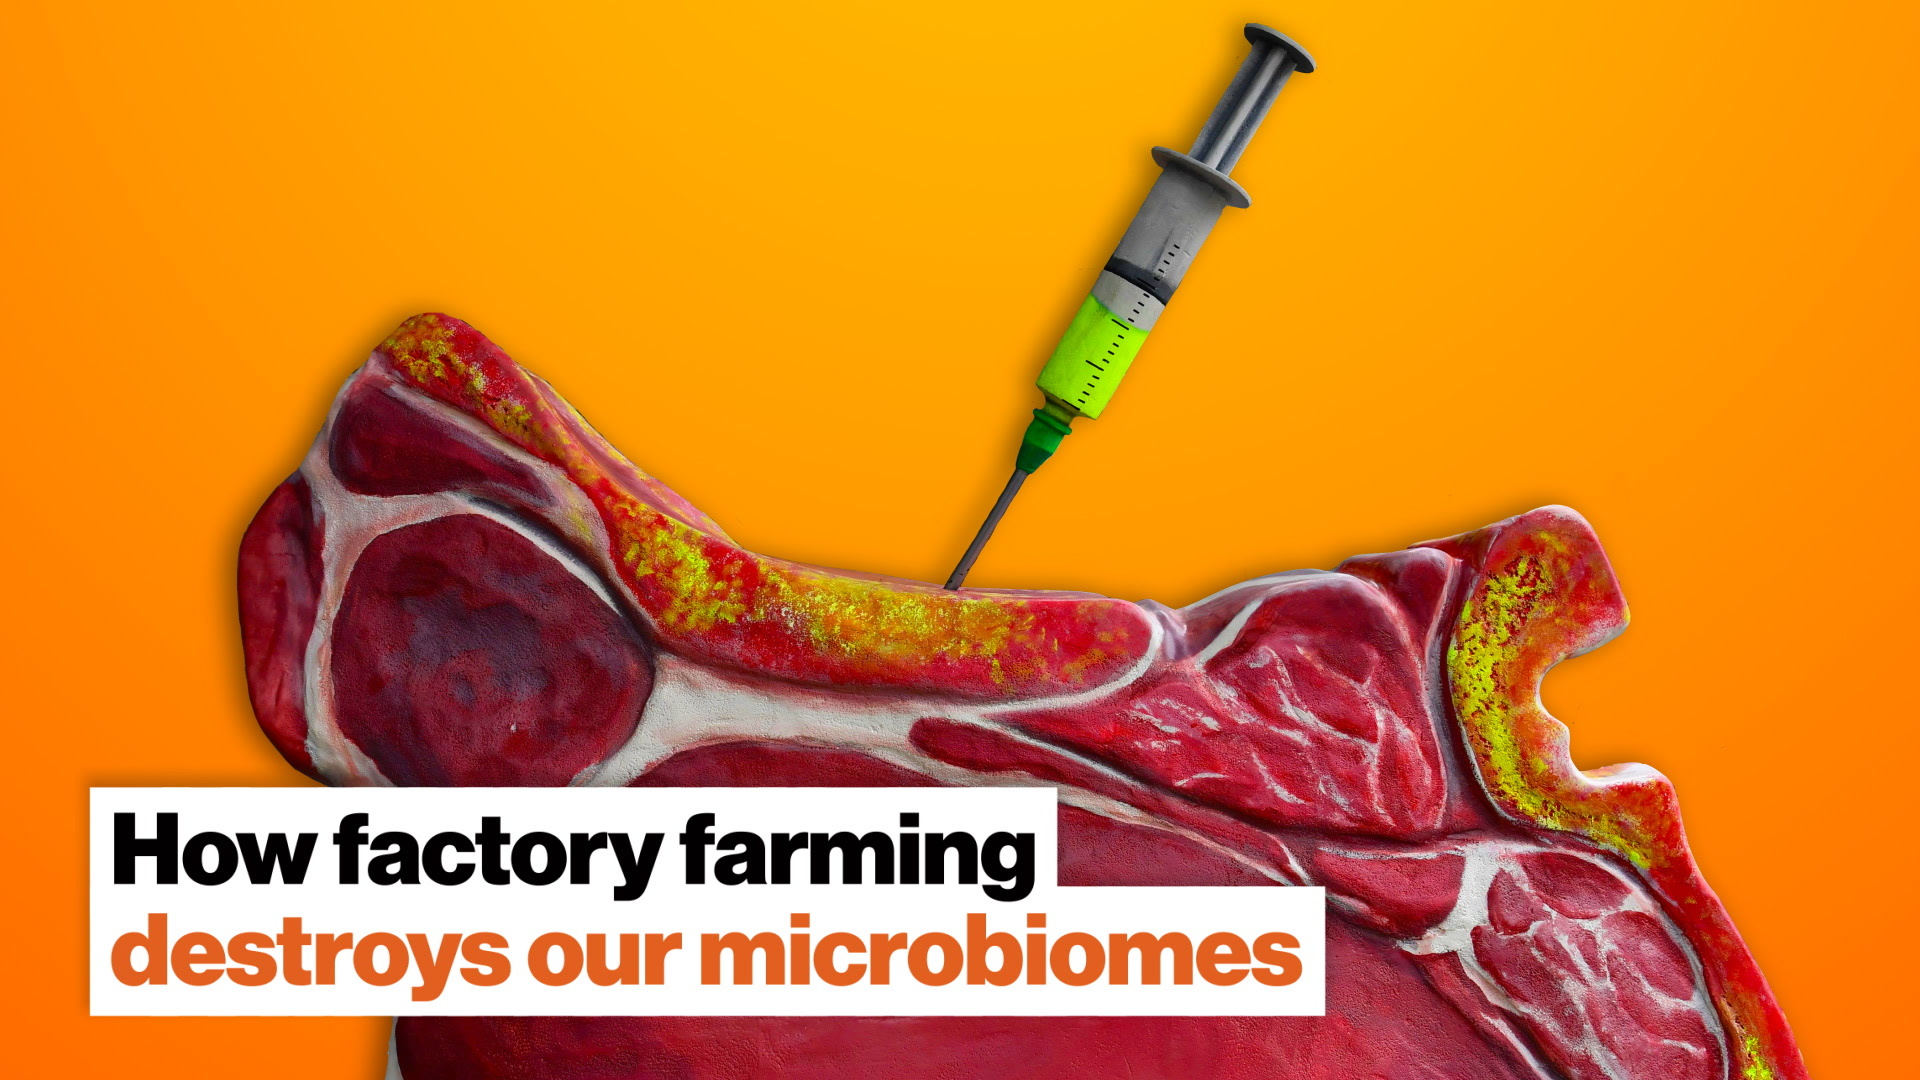 How antibiotics used in factory farming destroy our microbiomes